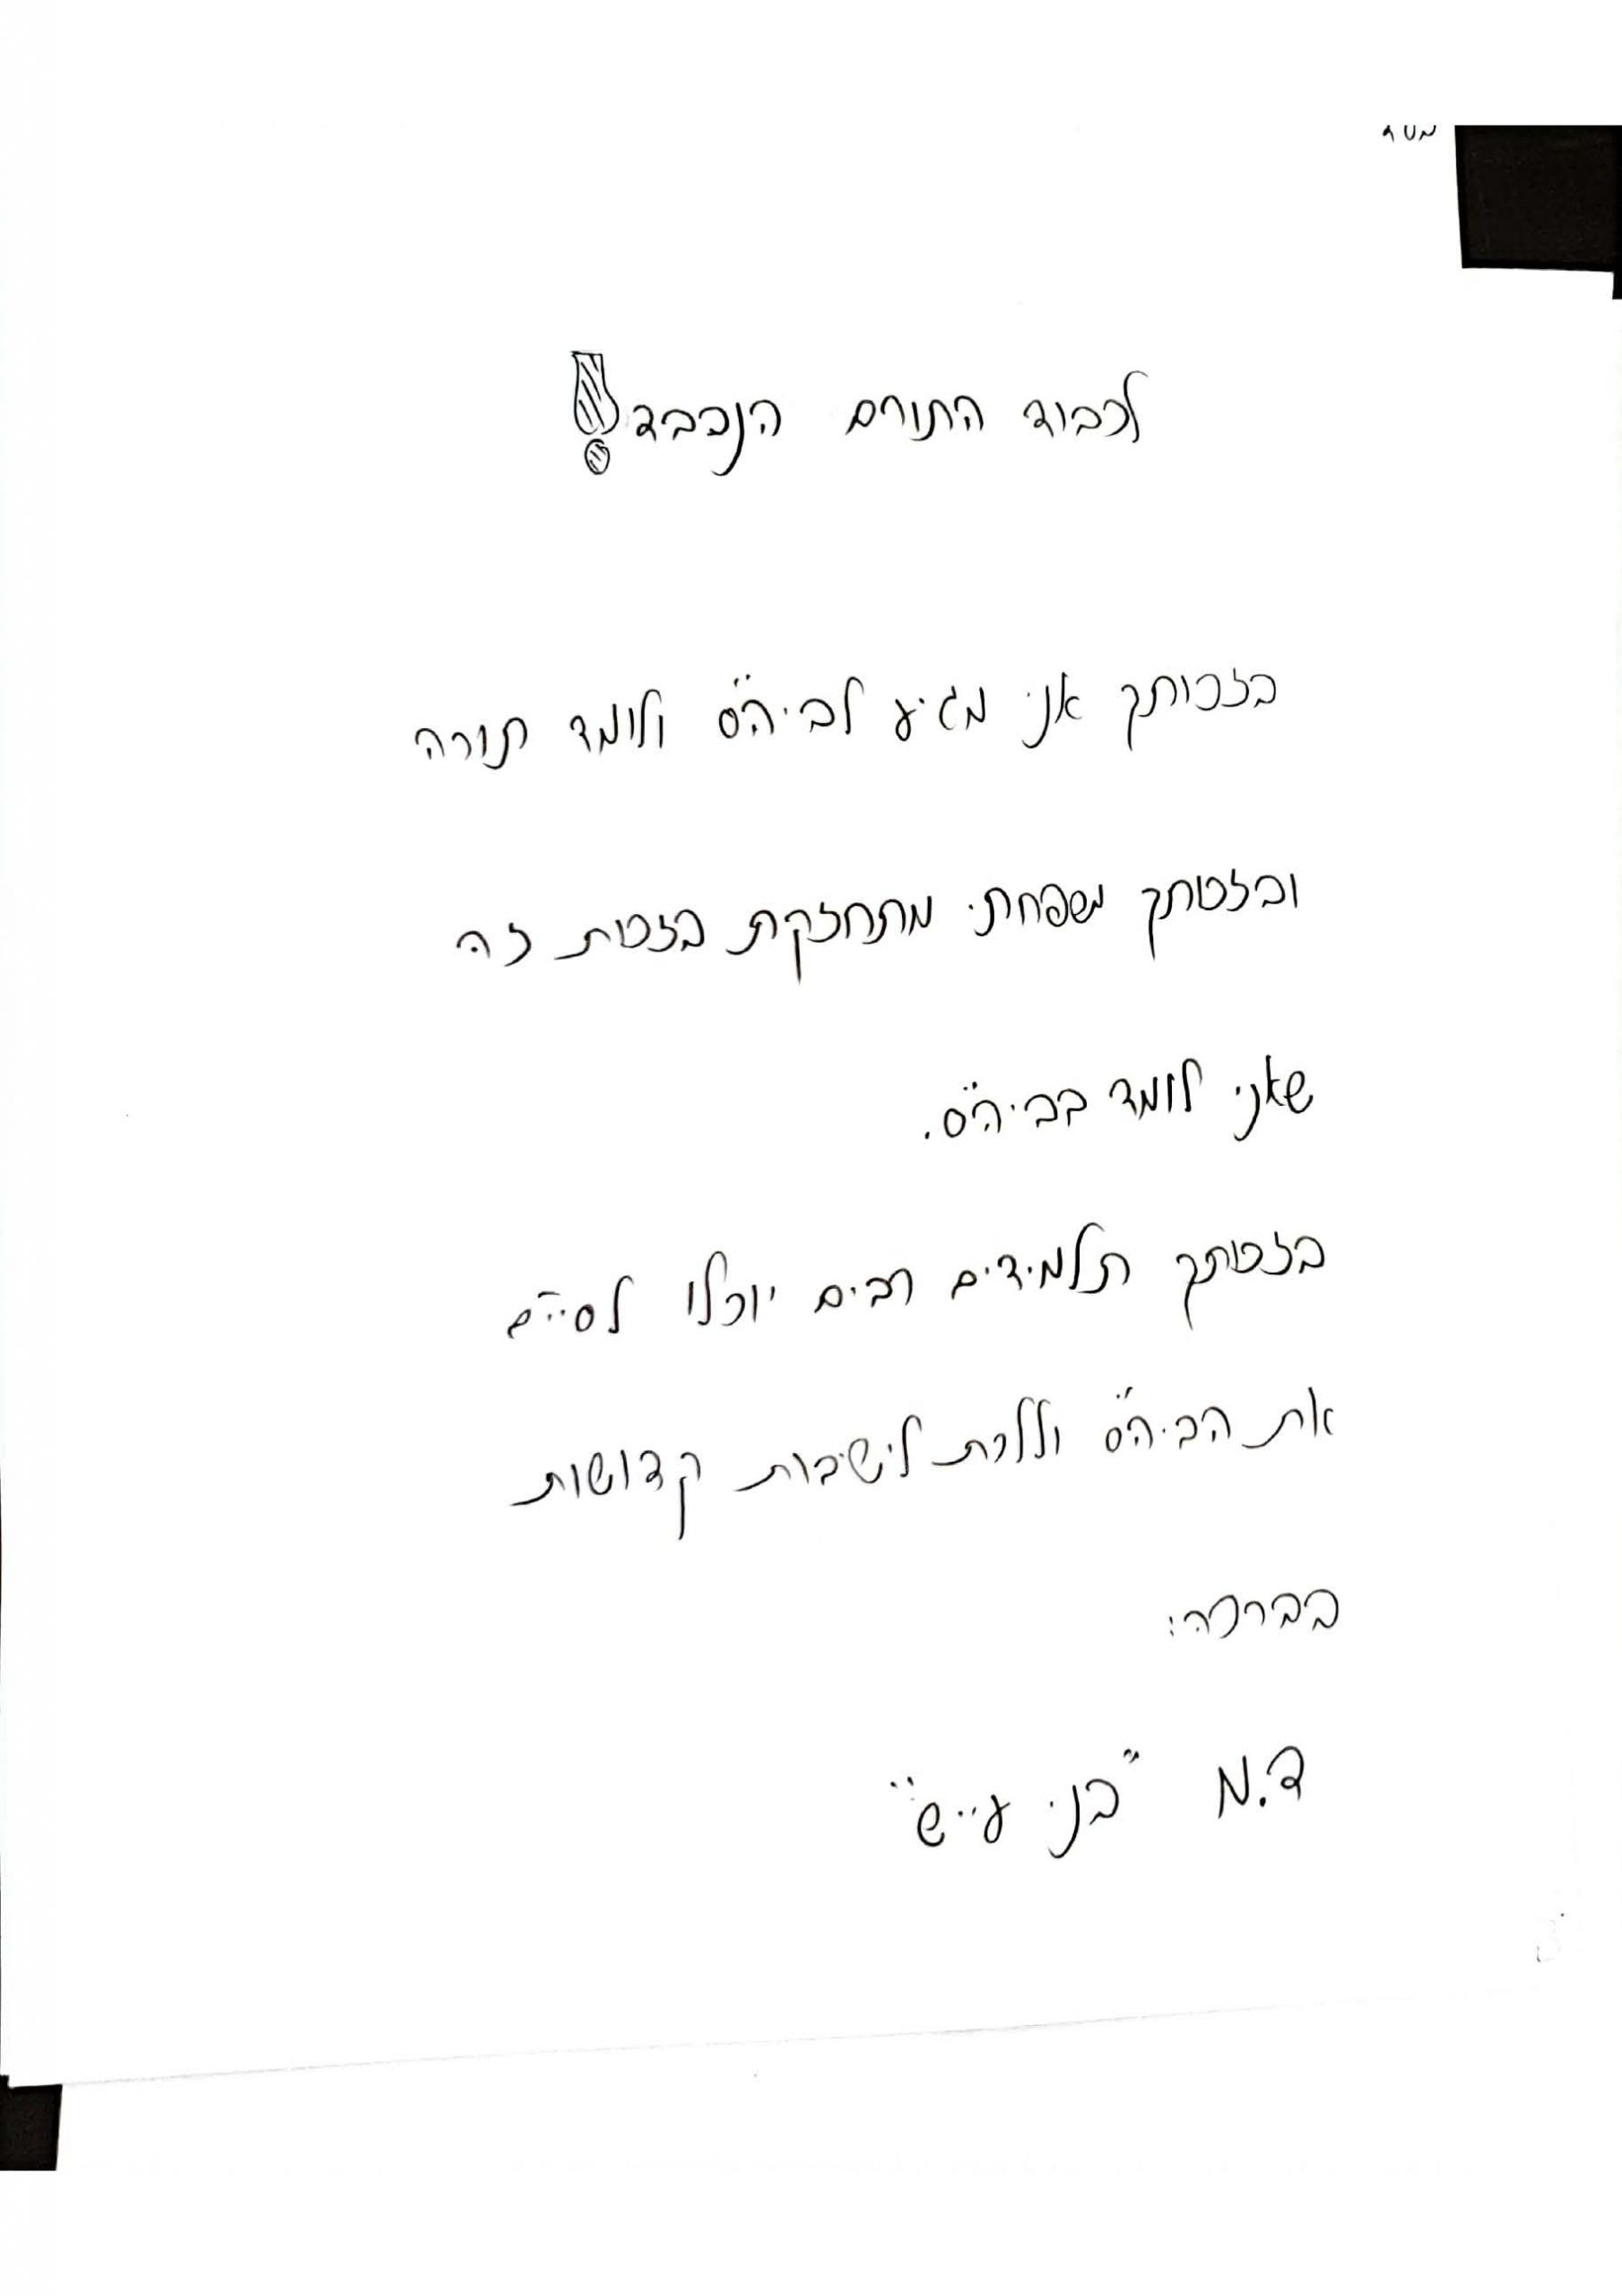 CamScanner 07-28-2021 09.13_Page_6